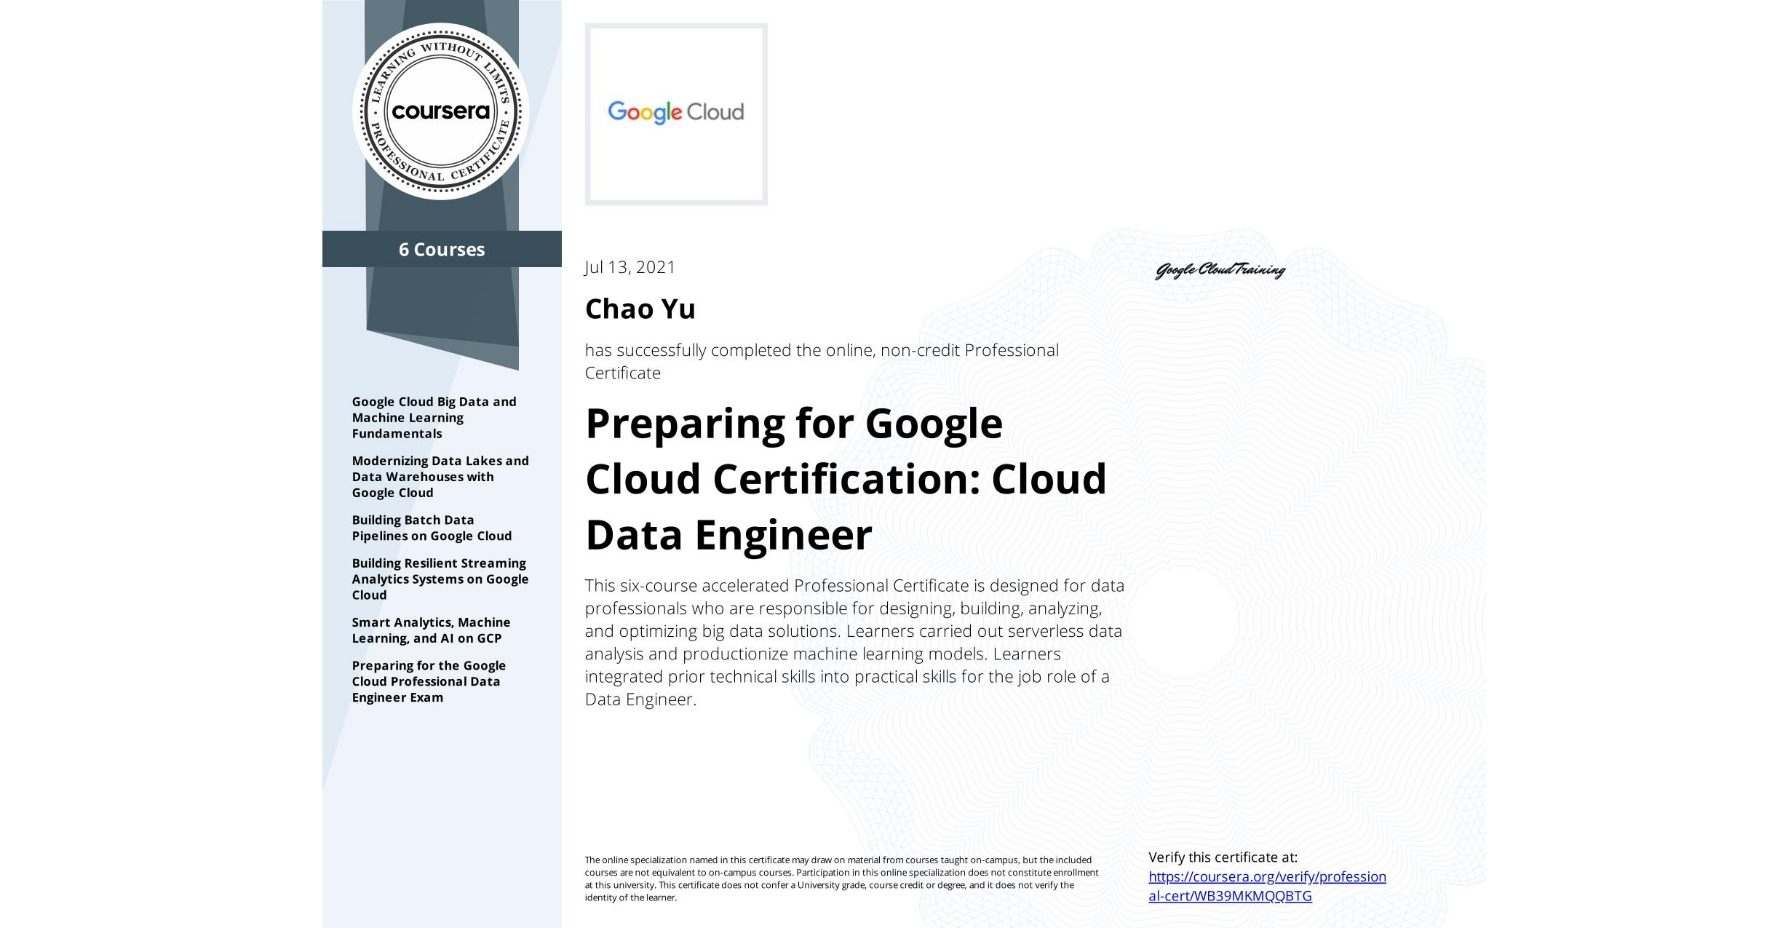 View certificate for Chao Yu, Preparing for Google Cloud Certification: Cloud Data Engineer, offered through Coursera. This six-course accelerated Professional Certificate is designed for data professionals who are responsible for designing, building, analyzing, and optimizing big data solutions. Learners carried out serverless data analysis and productionize machine learning models.  Learners integrated prior technical skills into practical skills for the job role of a Data Engineer.